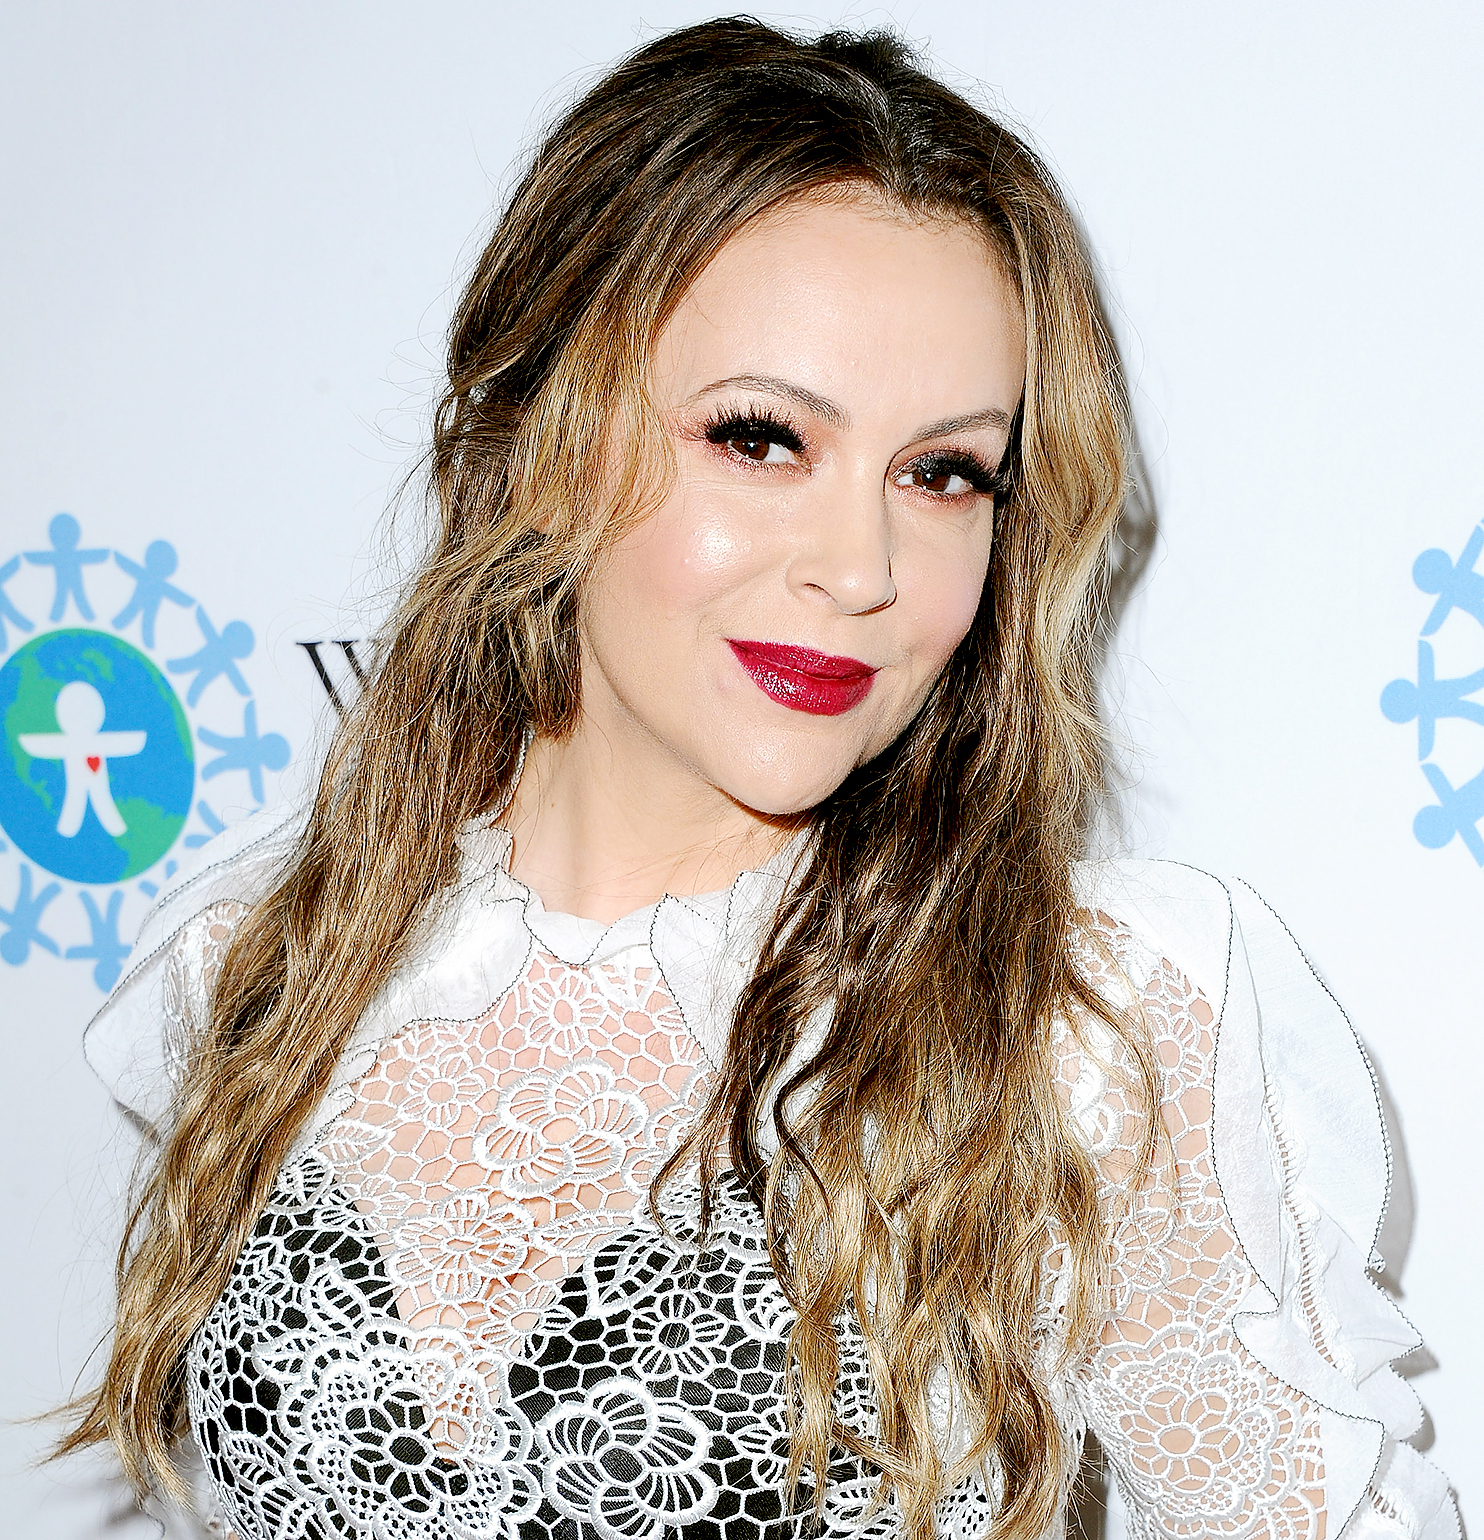 Alyssa Milano arrives at the 2017 World Of Children Hero Awards at Montage Beverly Hills on April 19, 2017 in Beverly Hills, California.